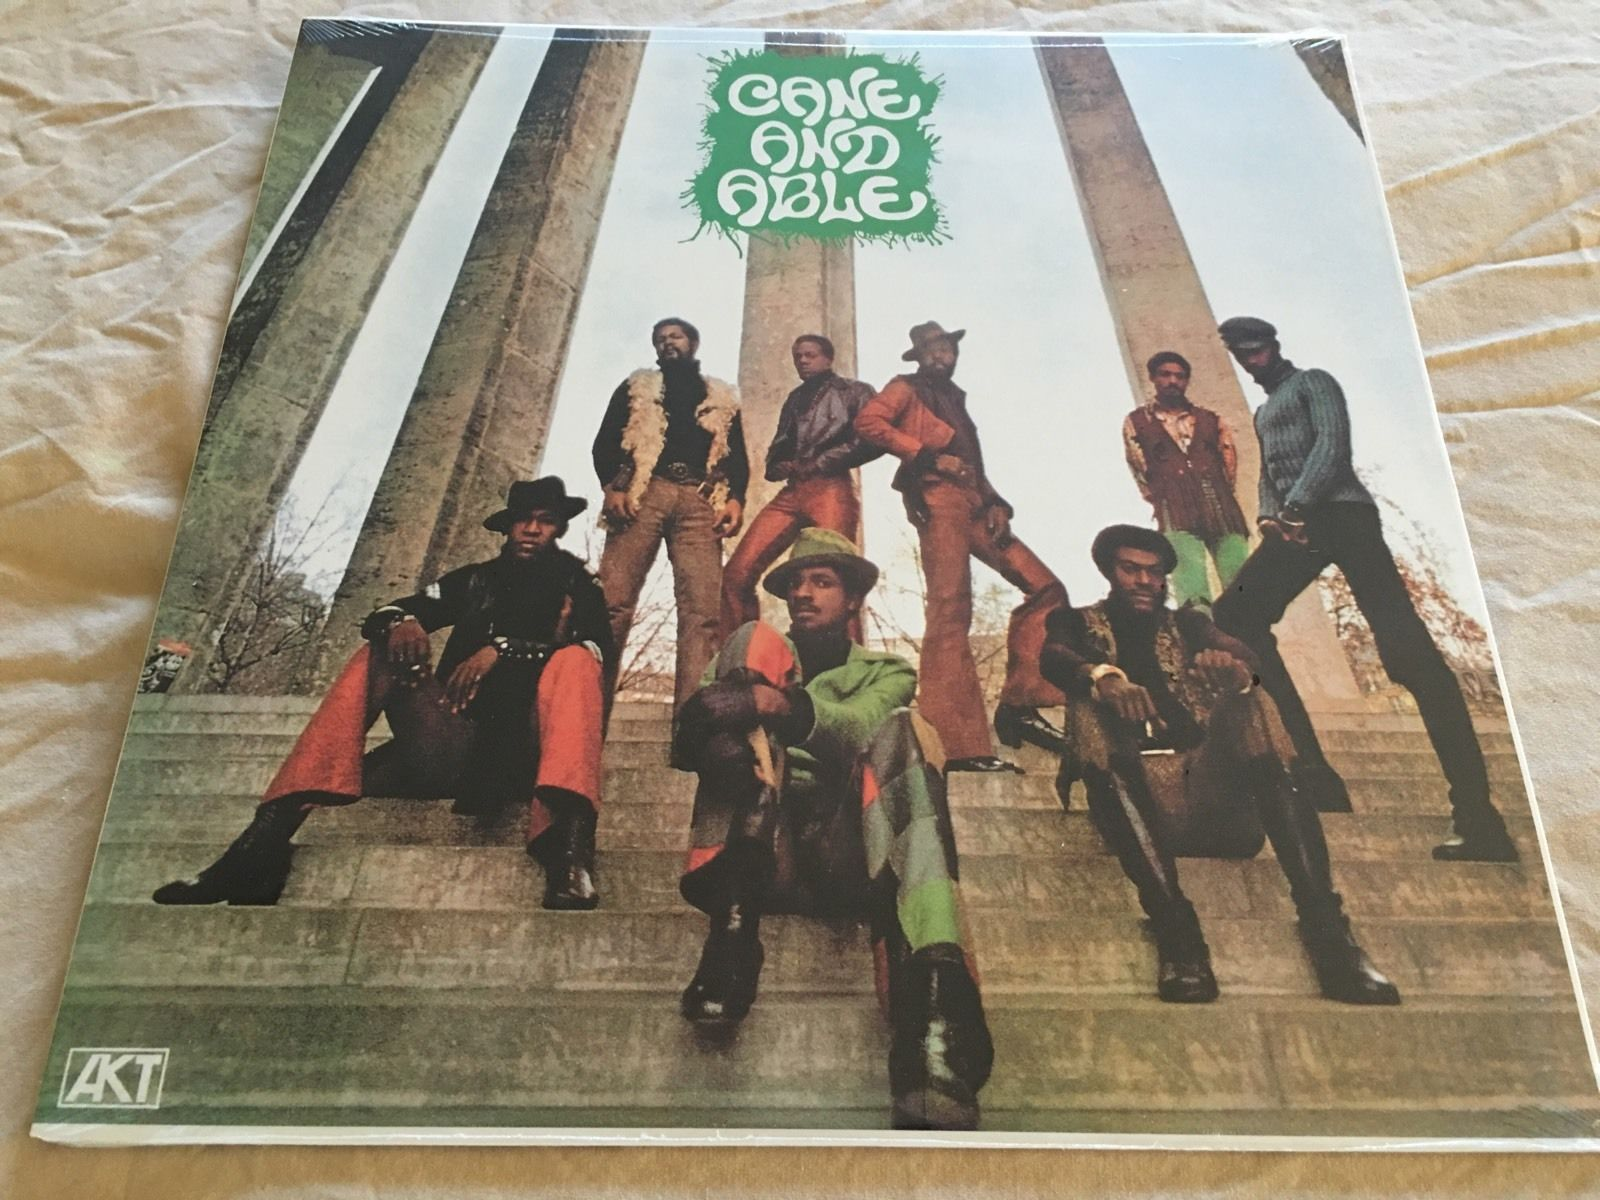 johnkatsmc5 cane and able cane and able 1972 french psych funk. Black Bedroom Furniture Sets. Home Design Ideas